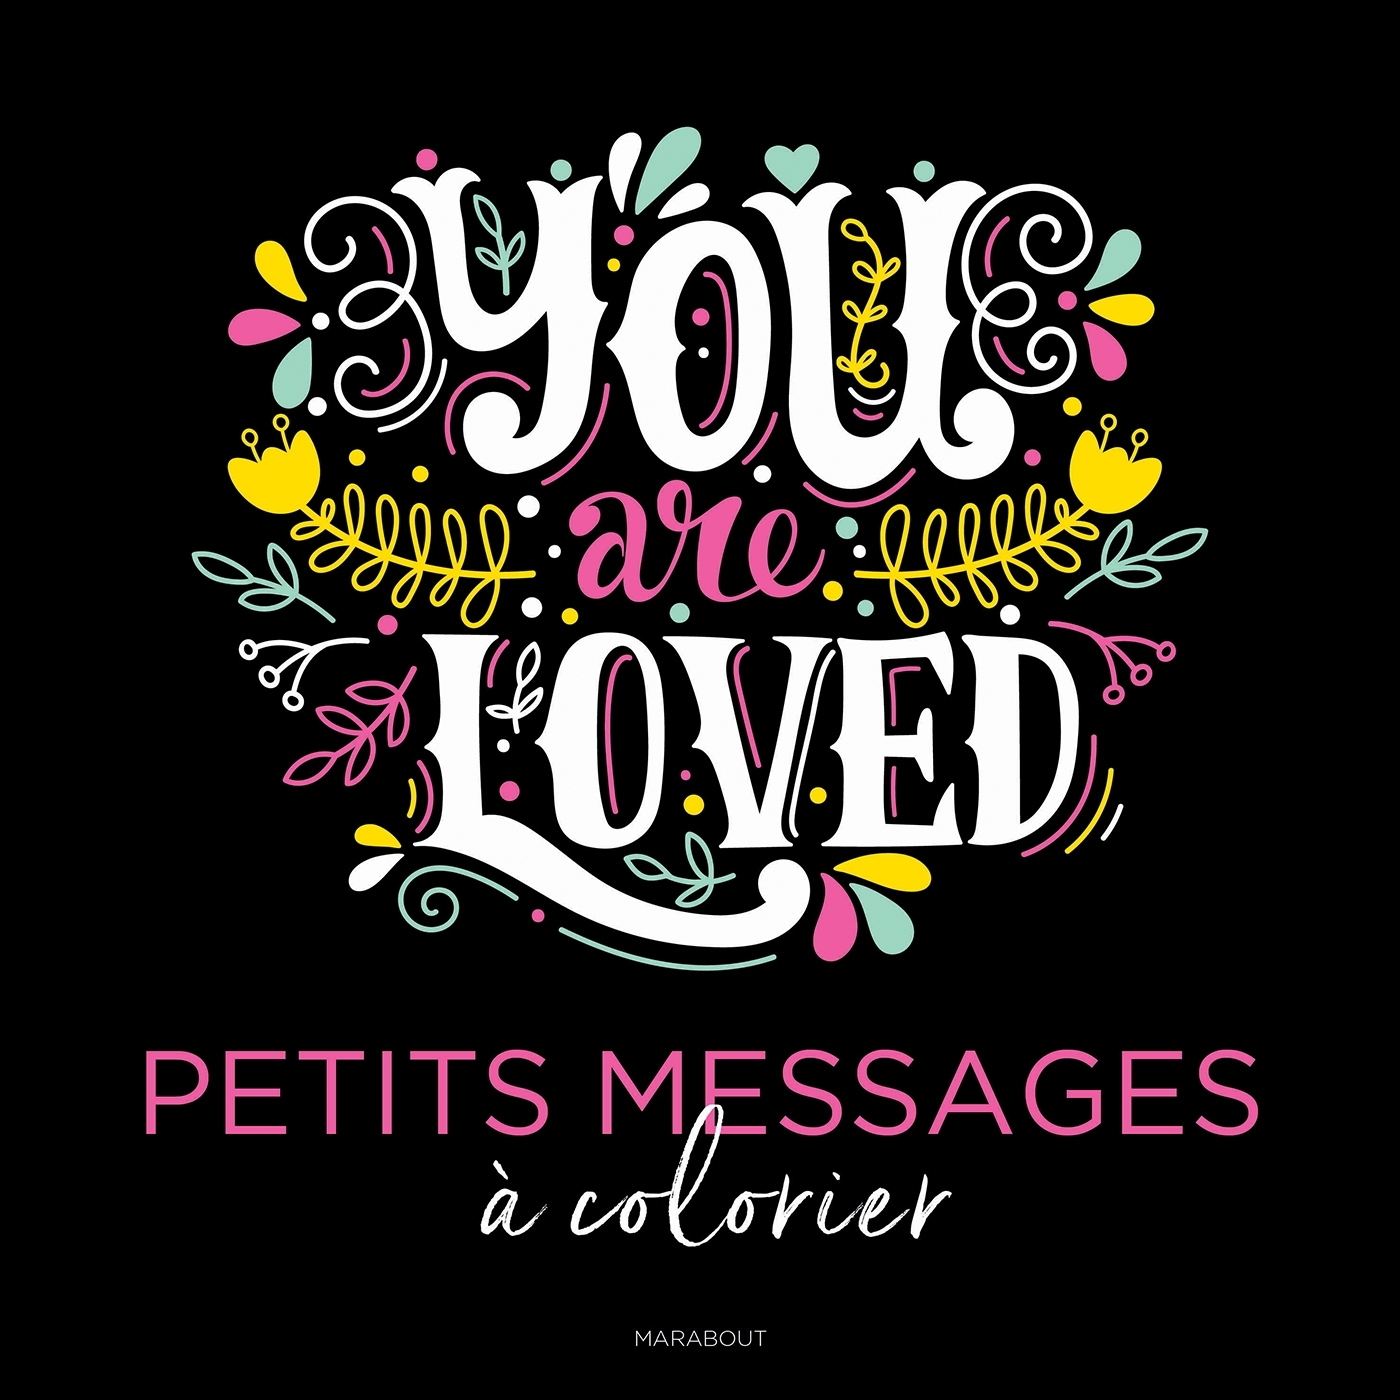 YOU ARE LOVED - PETITS MESSAGES A COLORIER